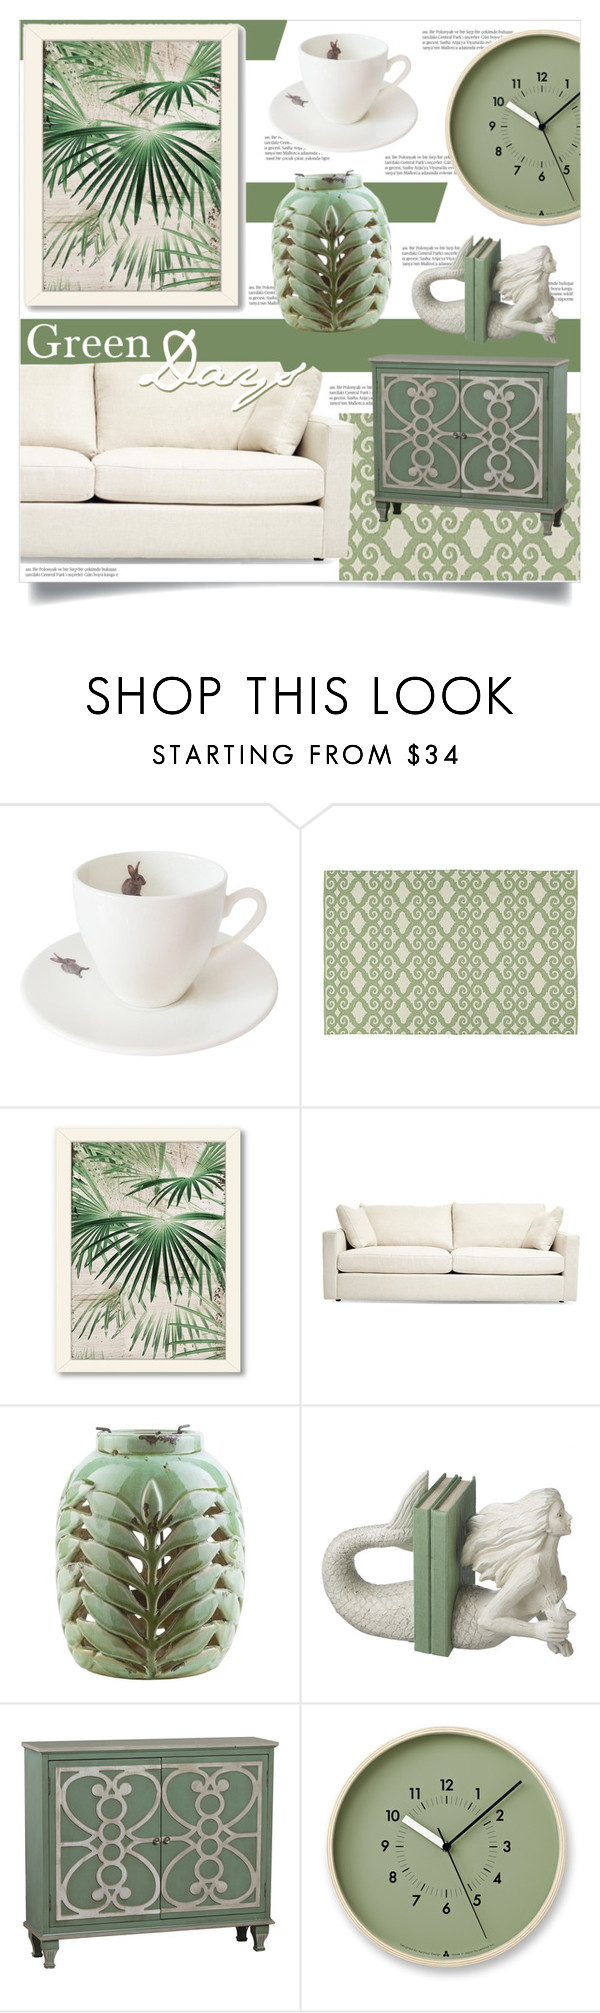 """""""Green Days"""" by tammara-d ❤ liked on Polyvore featuring interior, interiors, interior design, home, home decor, interior decorating, Outlandish Creations, Americanflat, Balmain and Surya"""